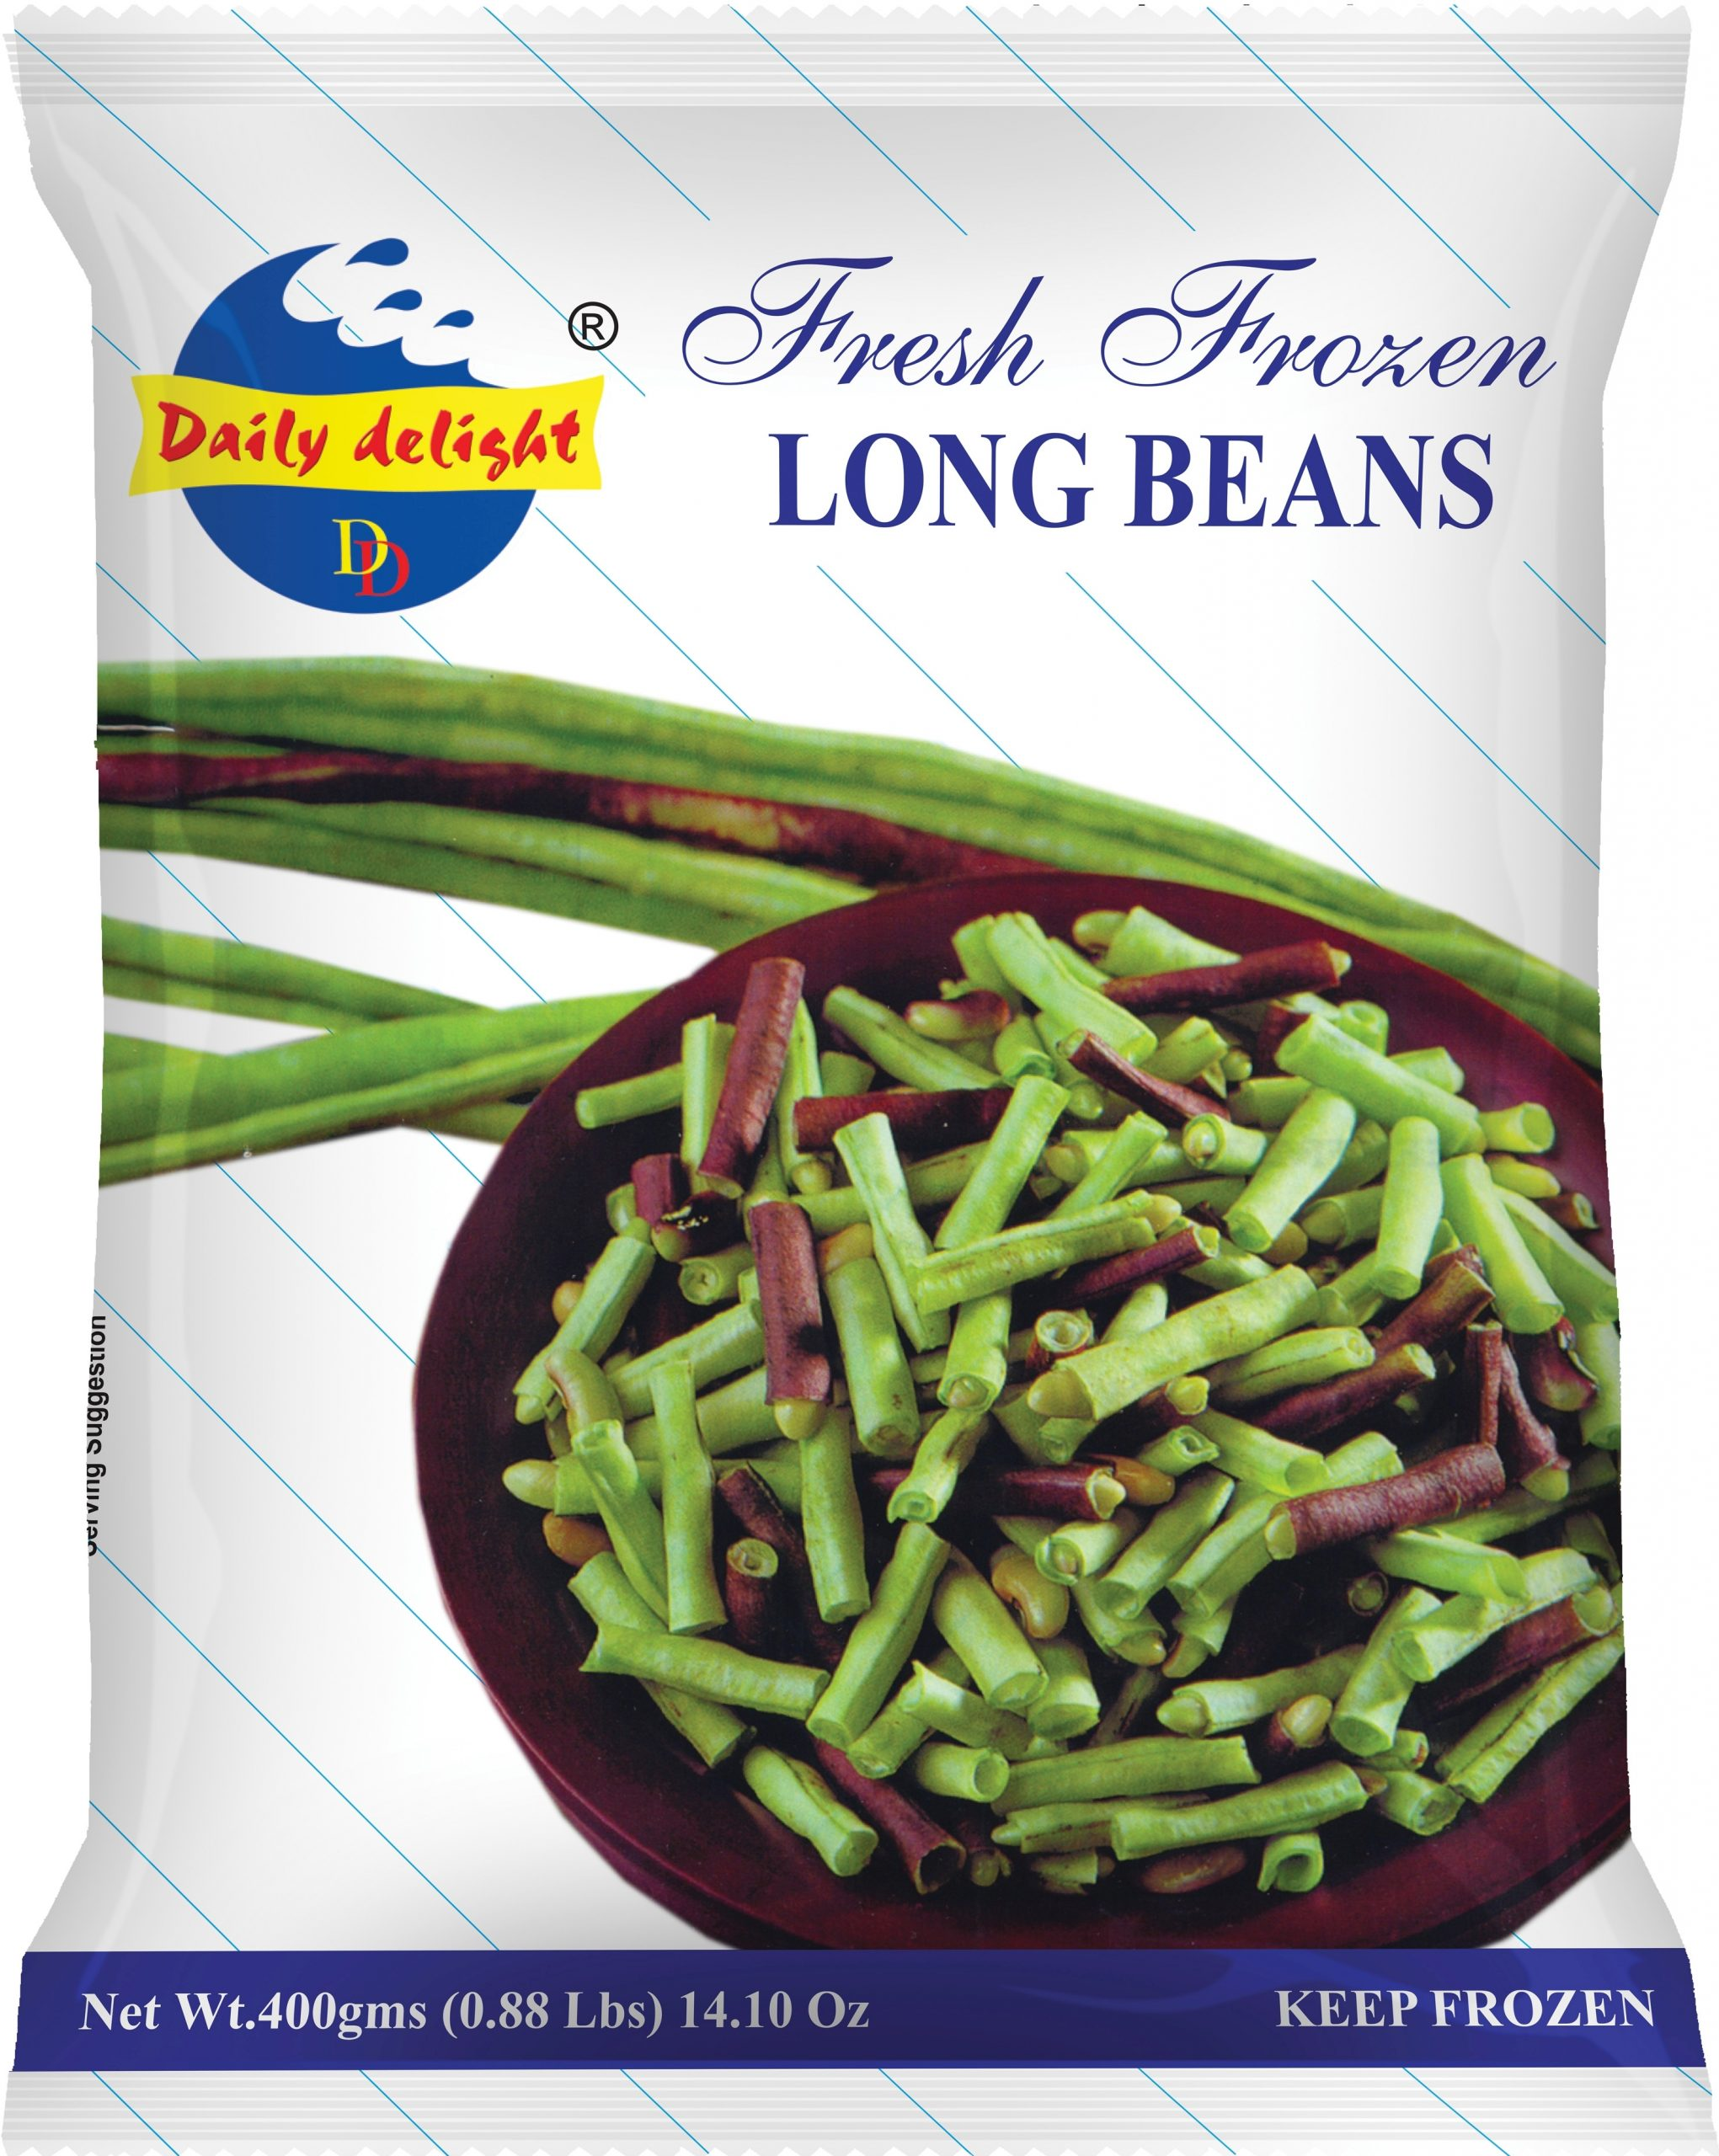 Daily Delight Long Beans